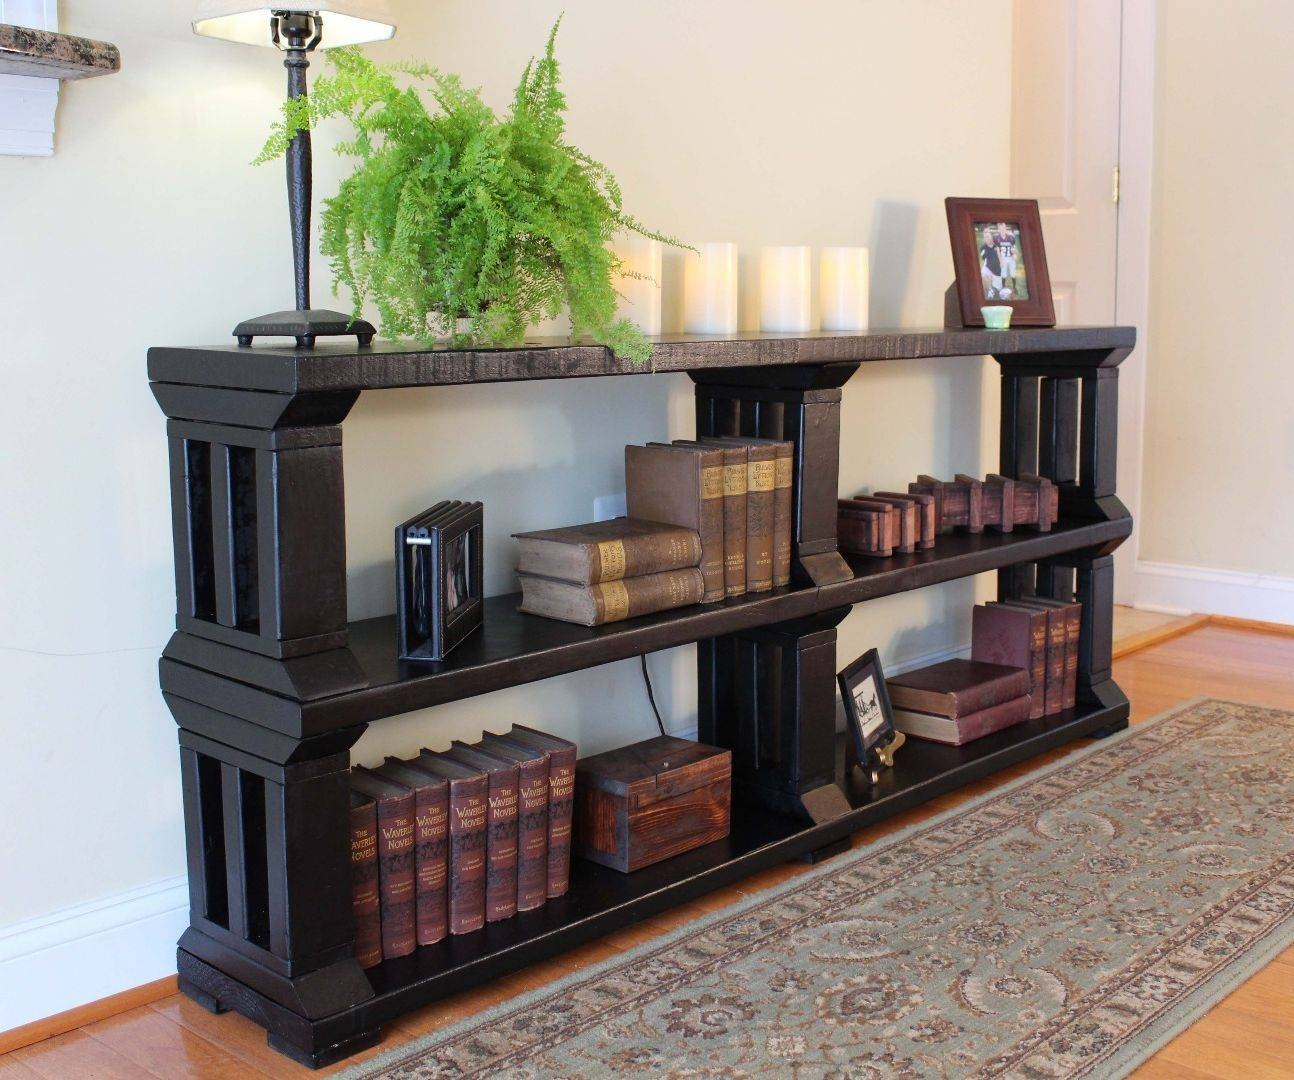 Rustic Book Shelf Or Tv Stand: 13 Steps (with Pictures) Intended For Bookshelf And Tv Stands (View 5 of 15)